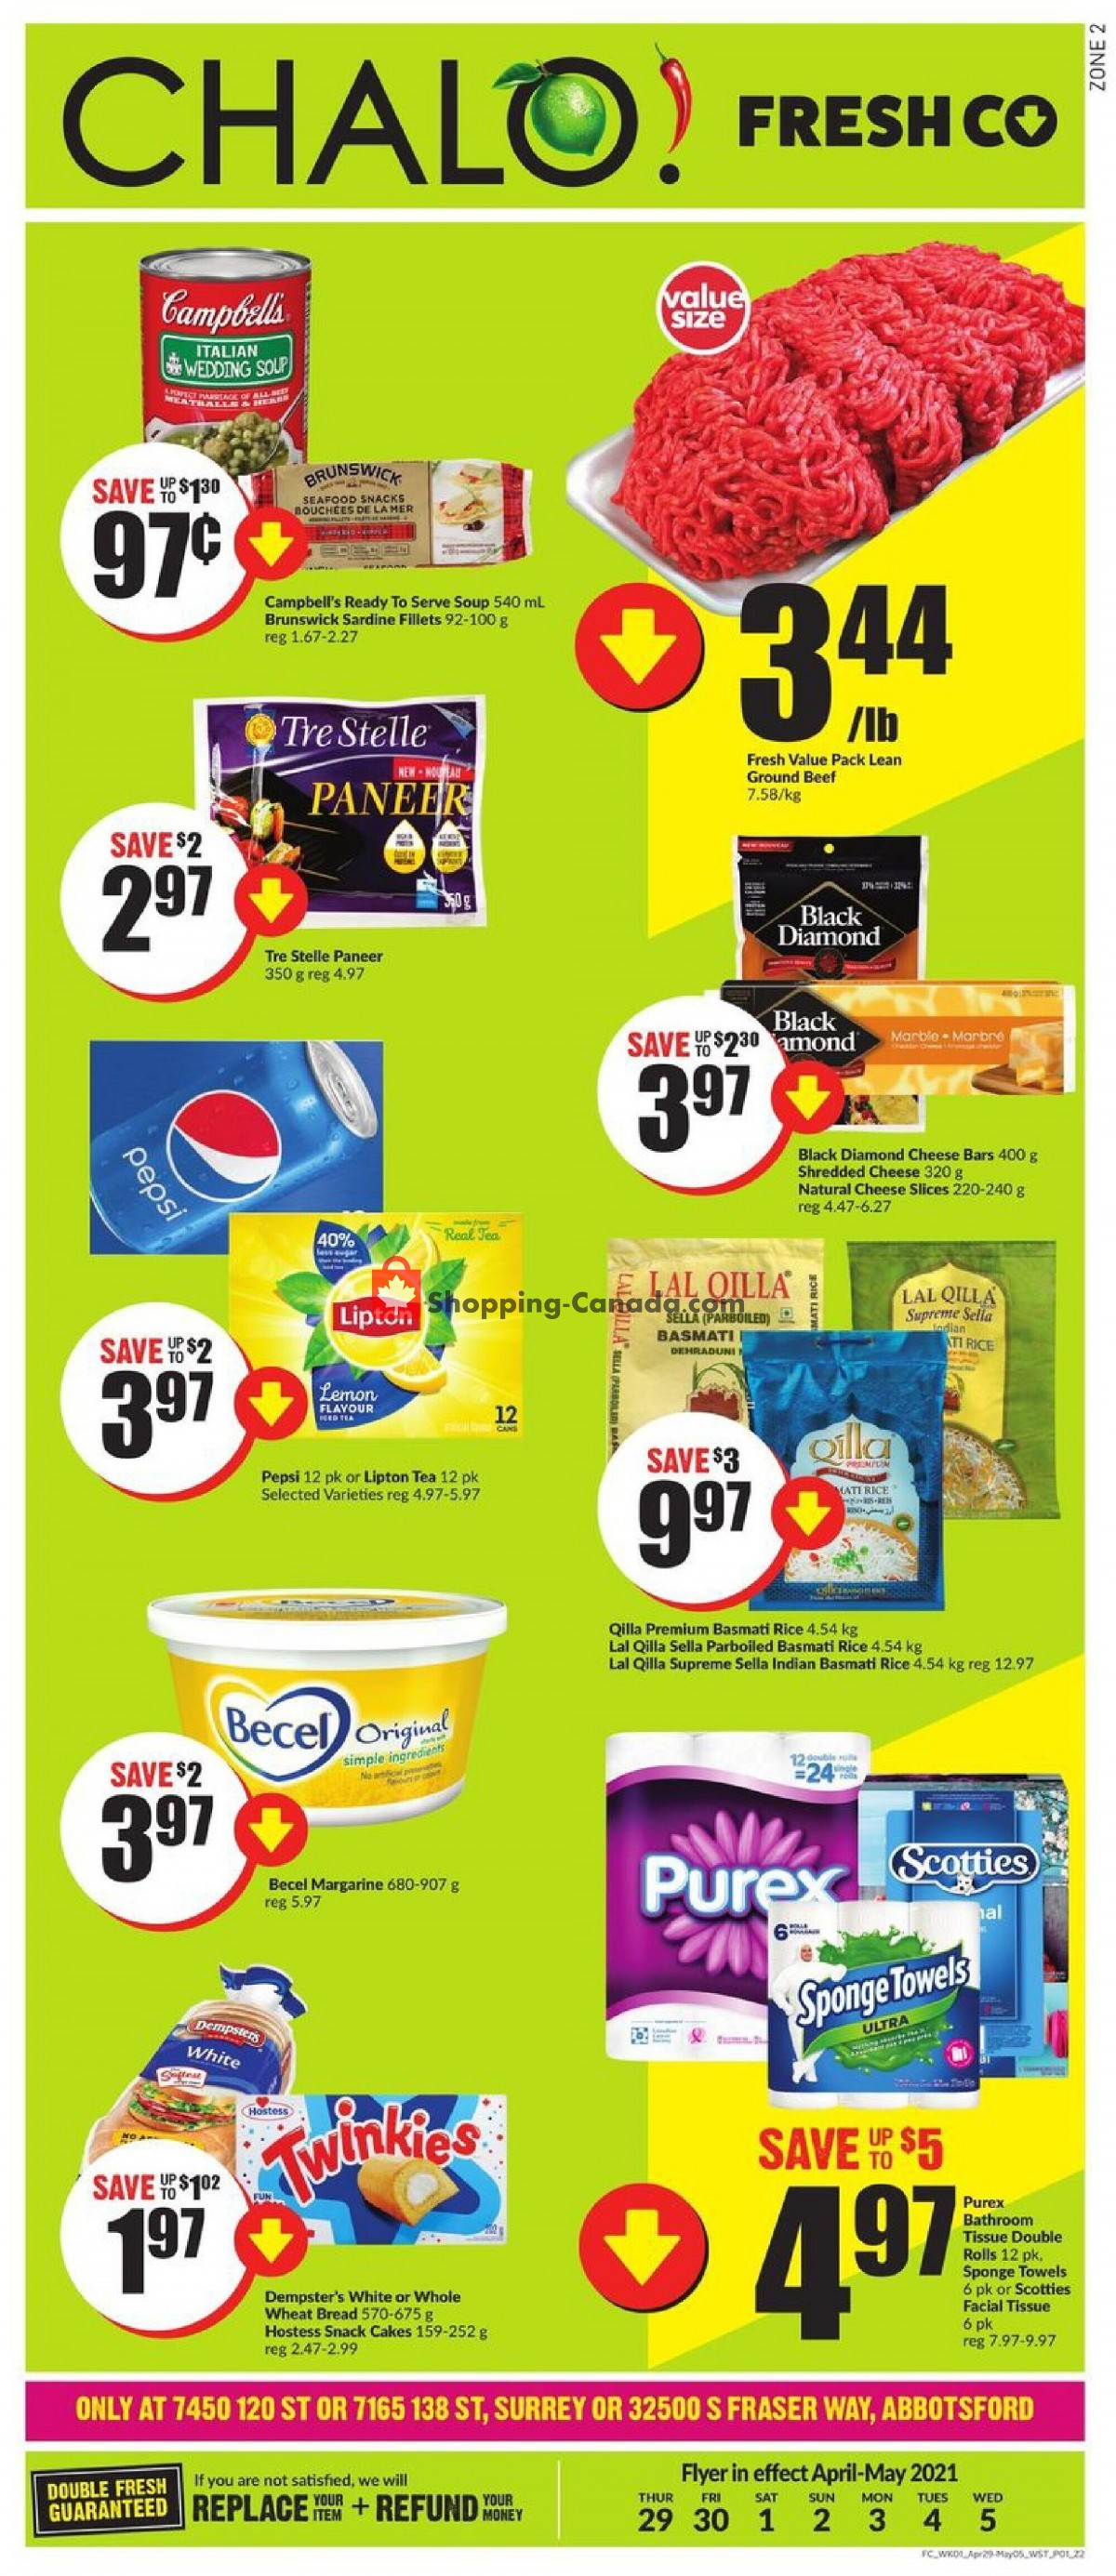 Flyer Chalo FreshCo Canada - from Thursday April 29, 2021 to Wednesday May 5, 2021